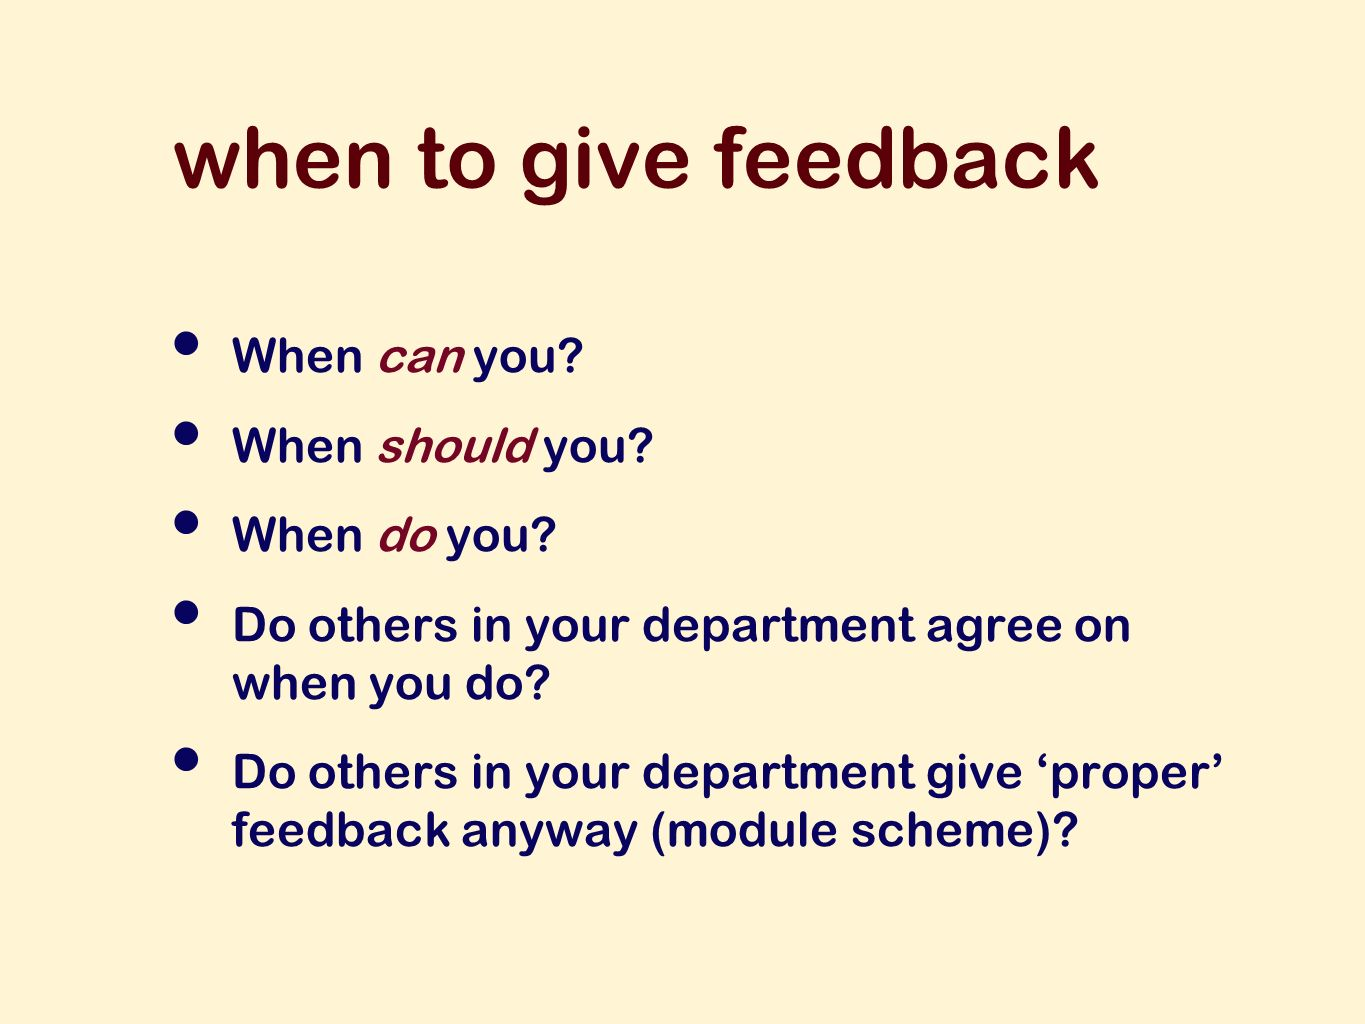 when to give feedback When can you. When should you.